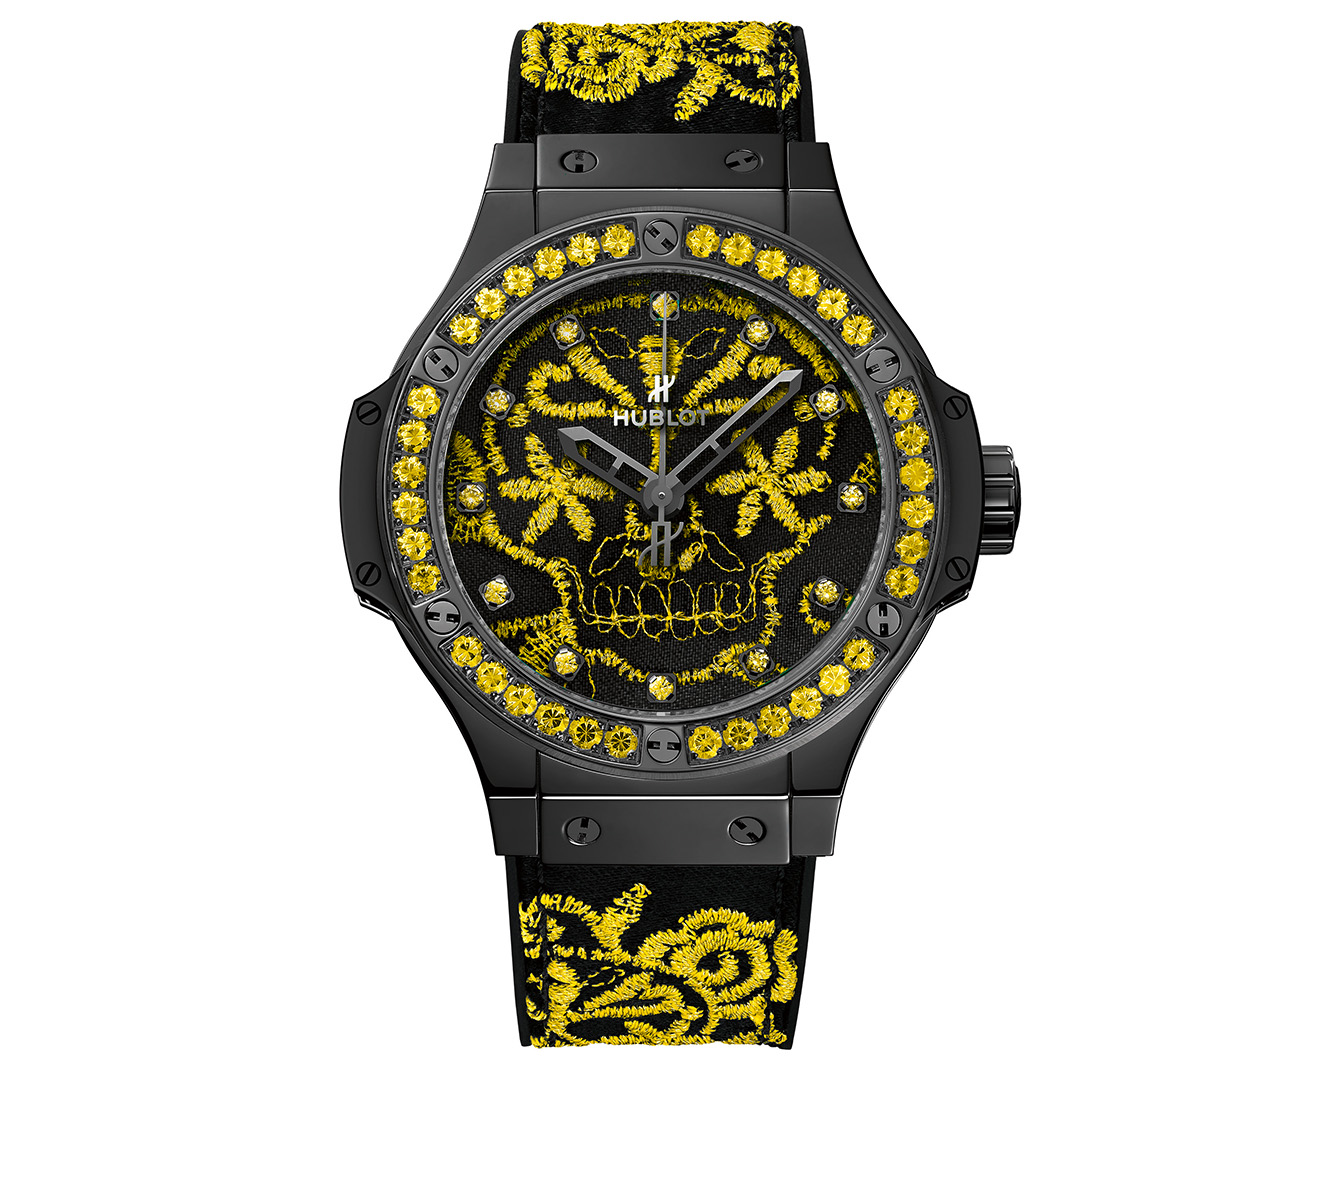 Часы Broderie Sugar Skull Fluo Sunpower HUBLOT Big Bang 343.CY.6590.NR.1211 - фото 1 – Mercury